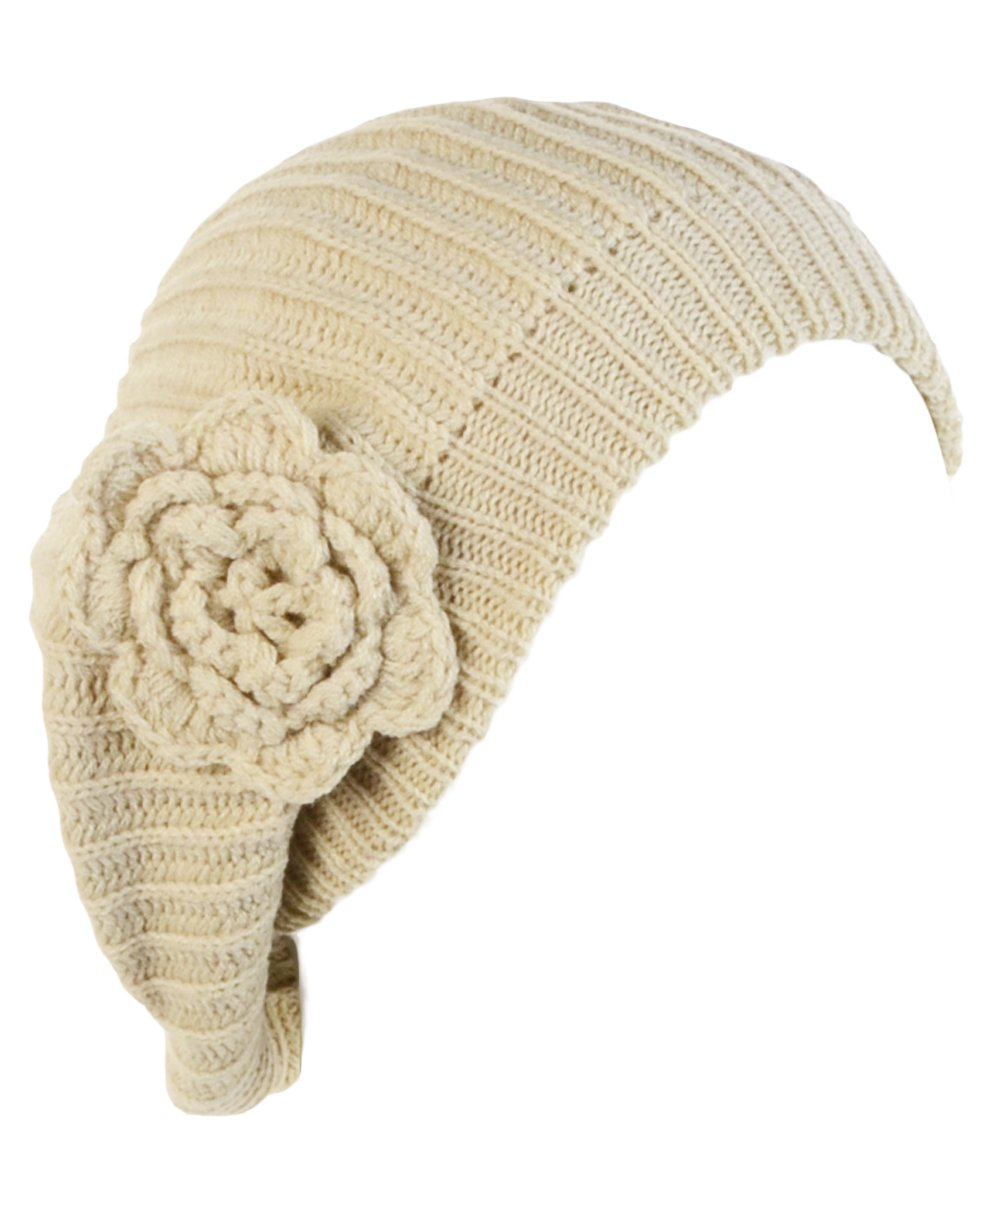 BYOS Ladies Winter Solid Chic Slouchy Ribbed Crochet Knit Beret Beanie Hat W/WO Flower Adornment, Soft Touch (Beige Flower)